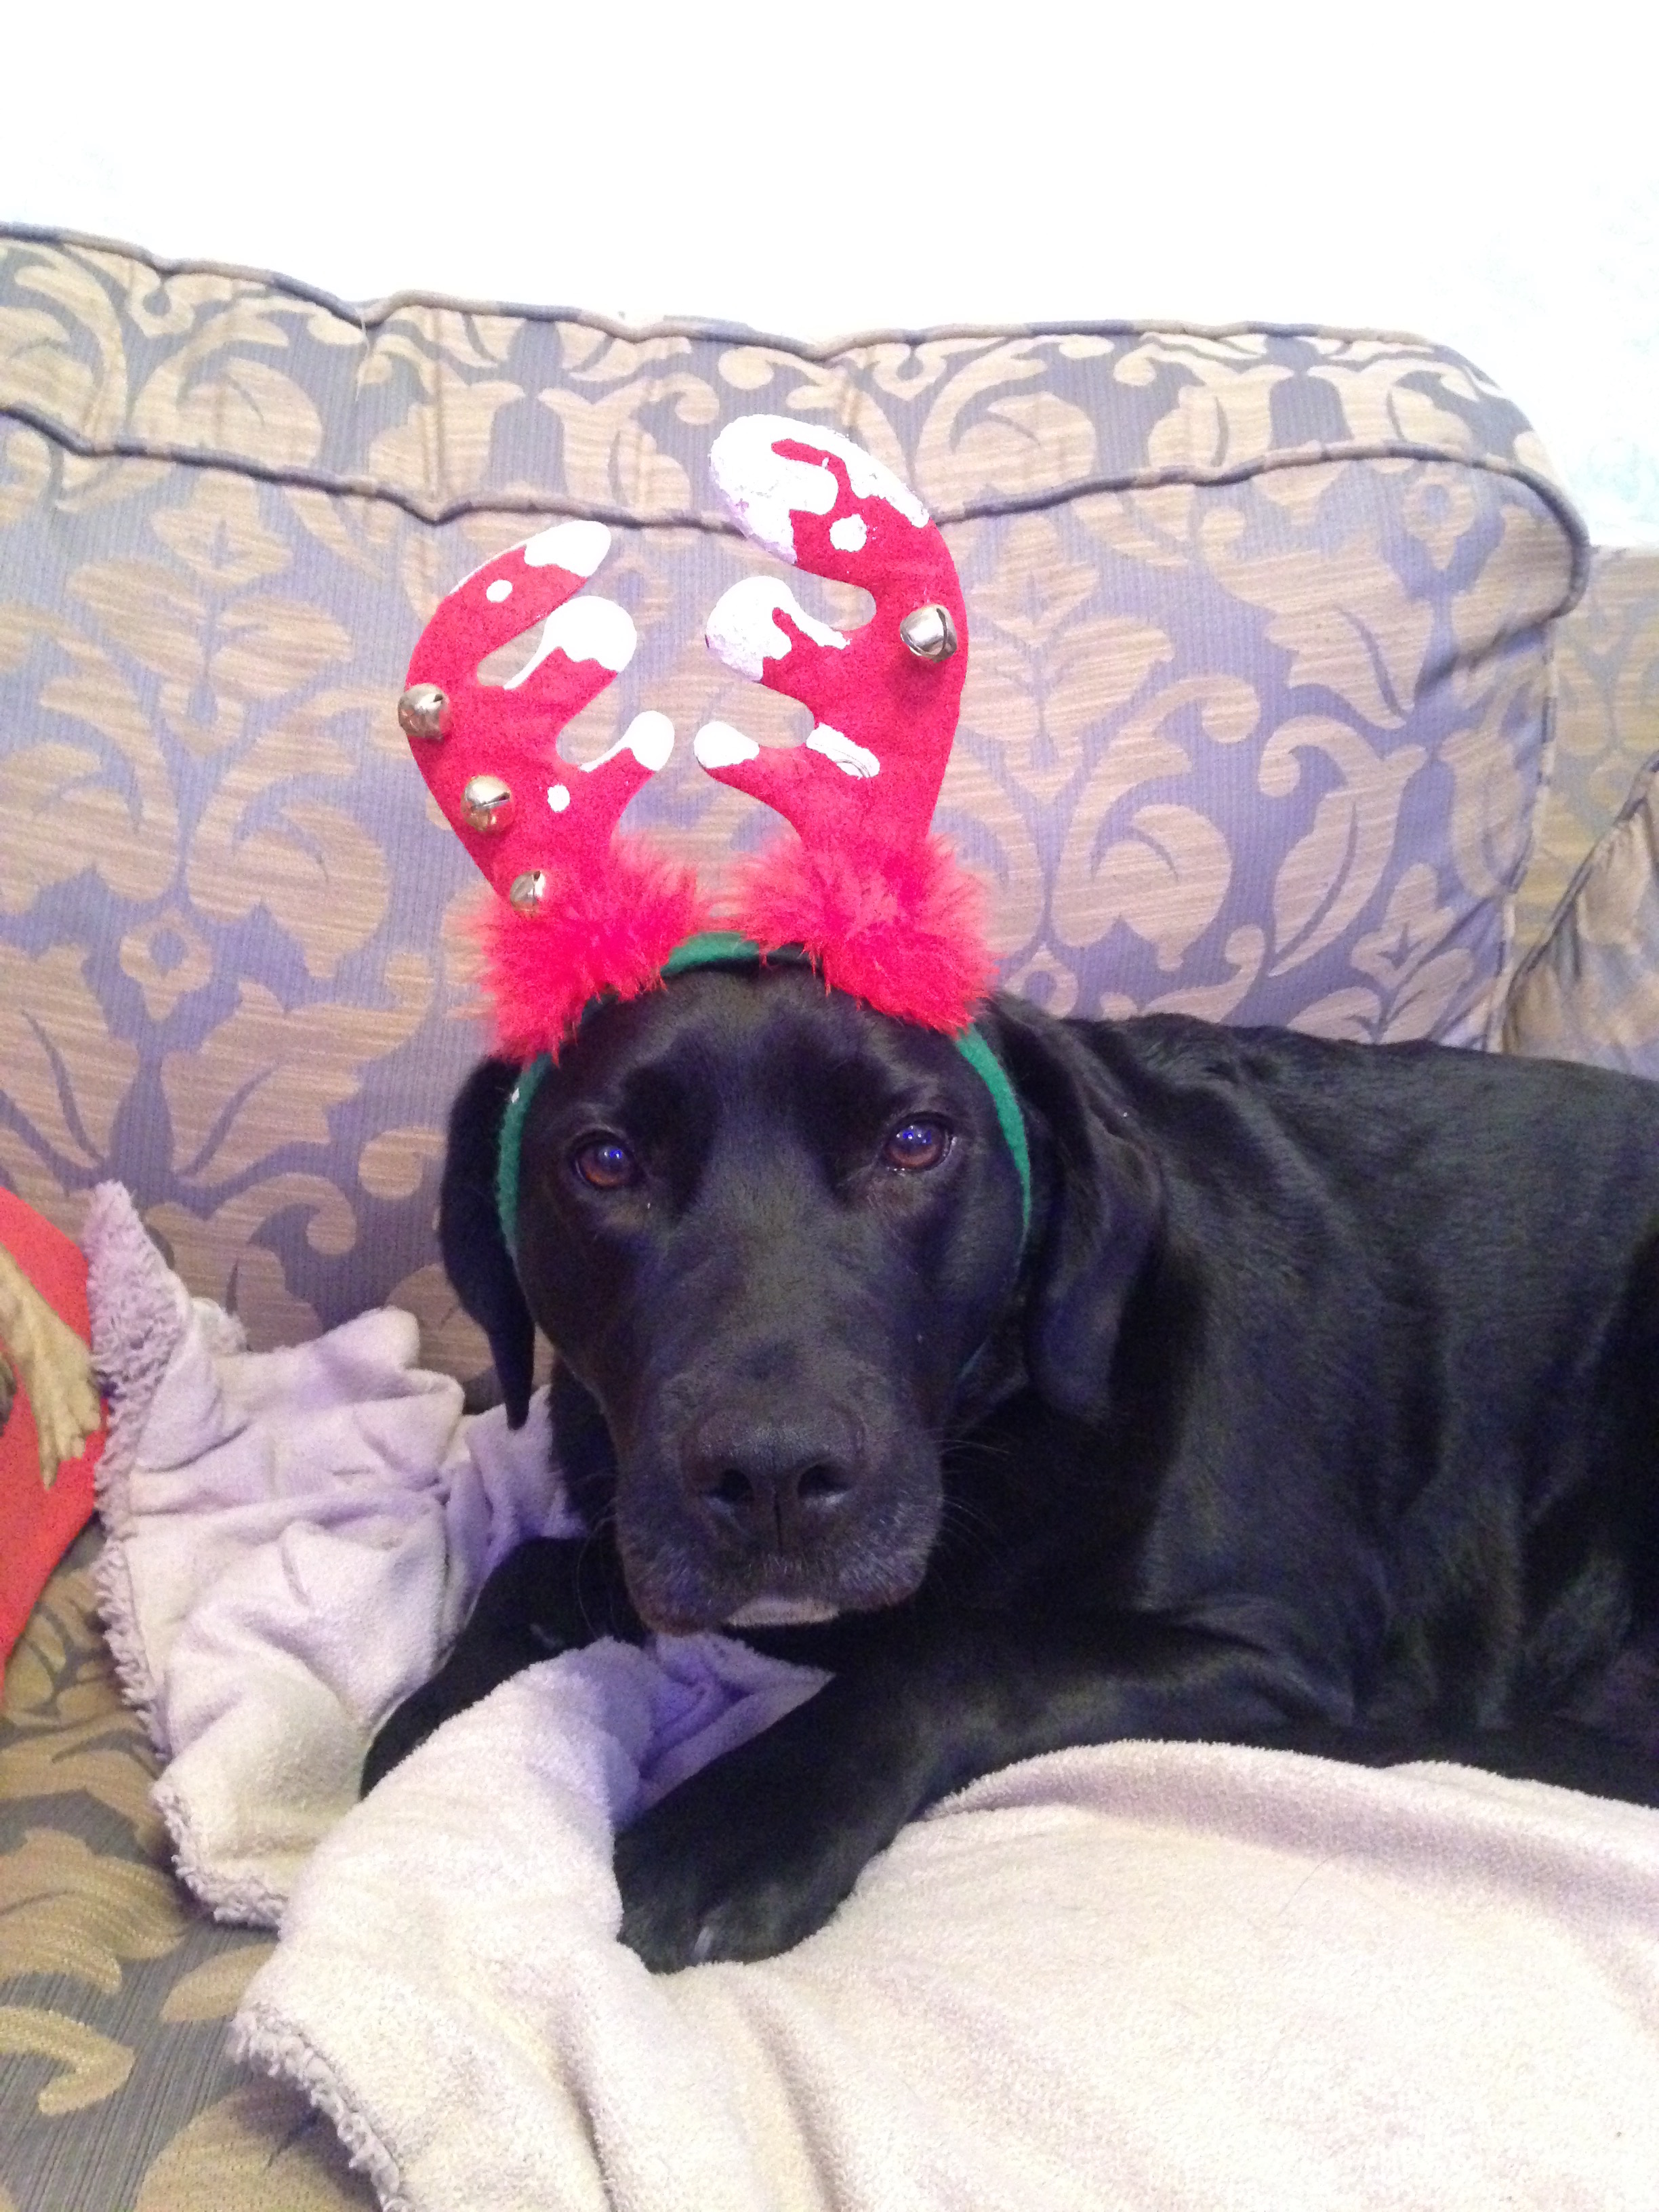 Best reindeer ever